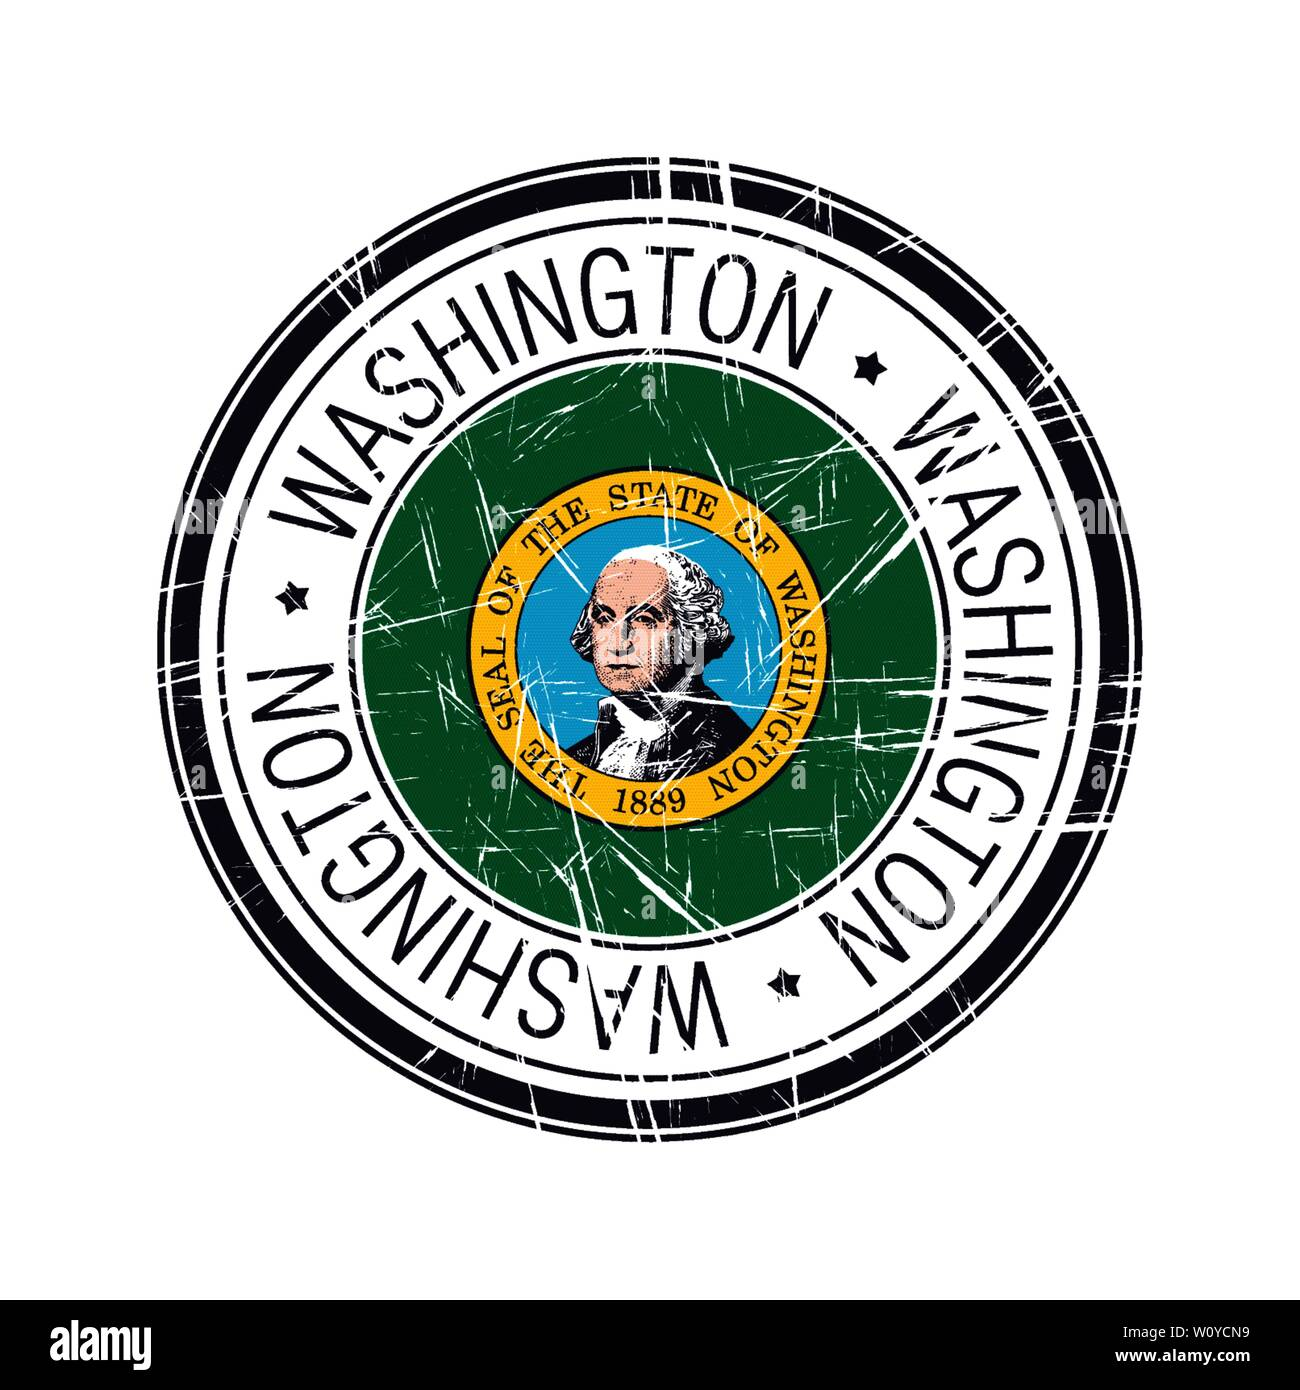 Great state of Washington postal rubber stamp, vector object over white background - Stock Vector